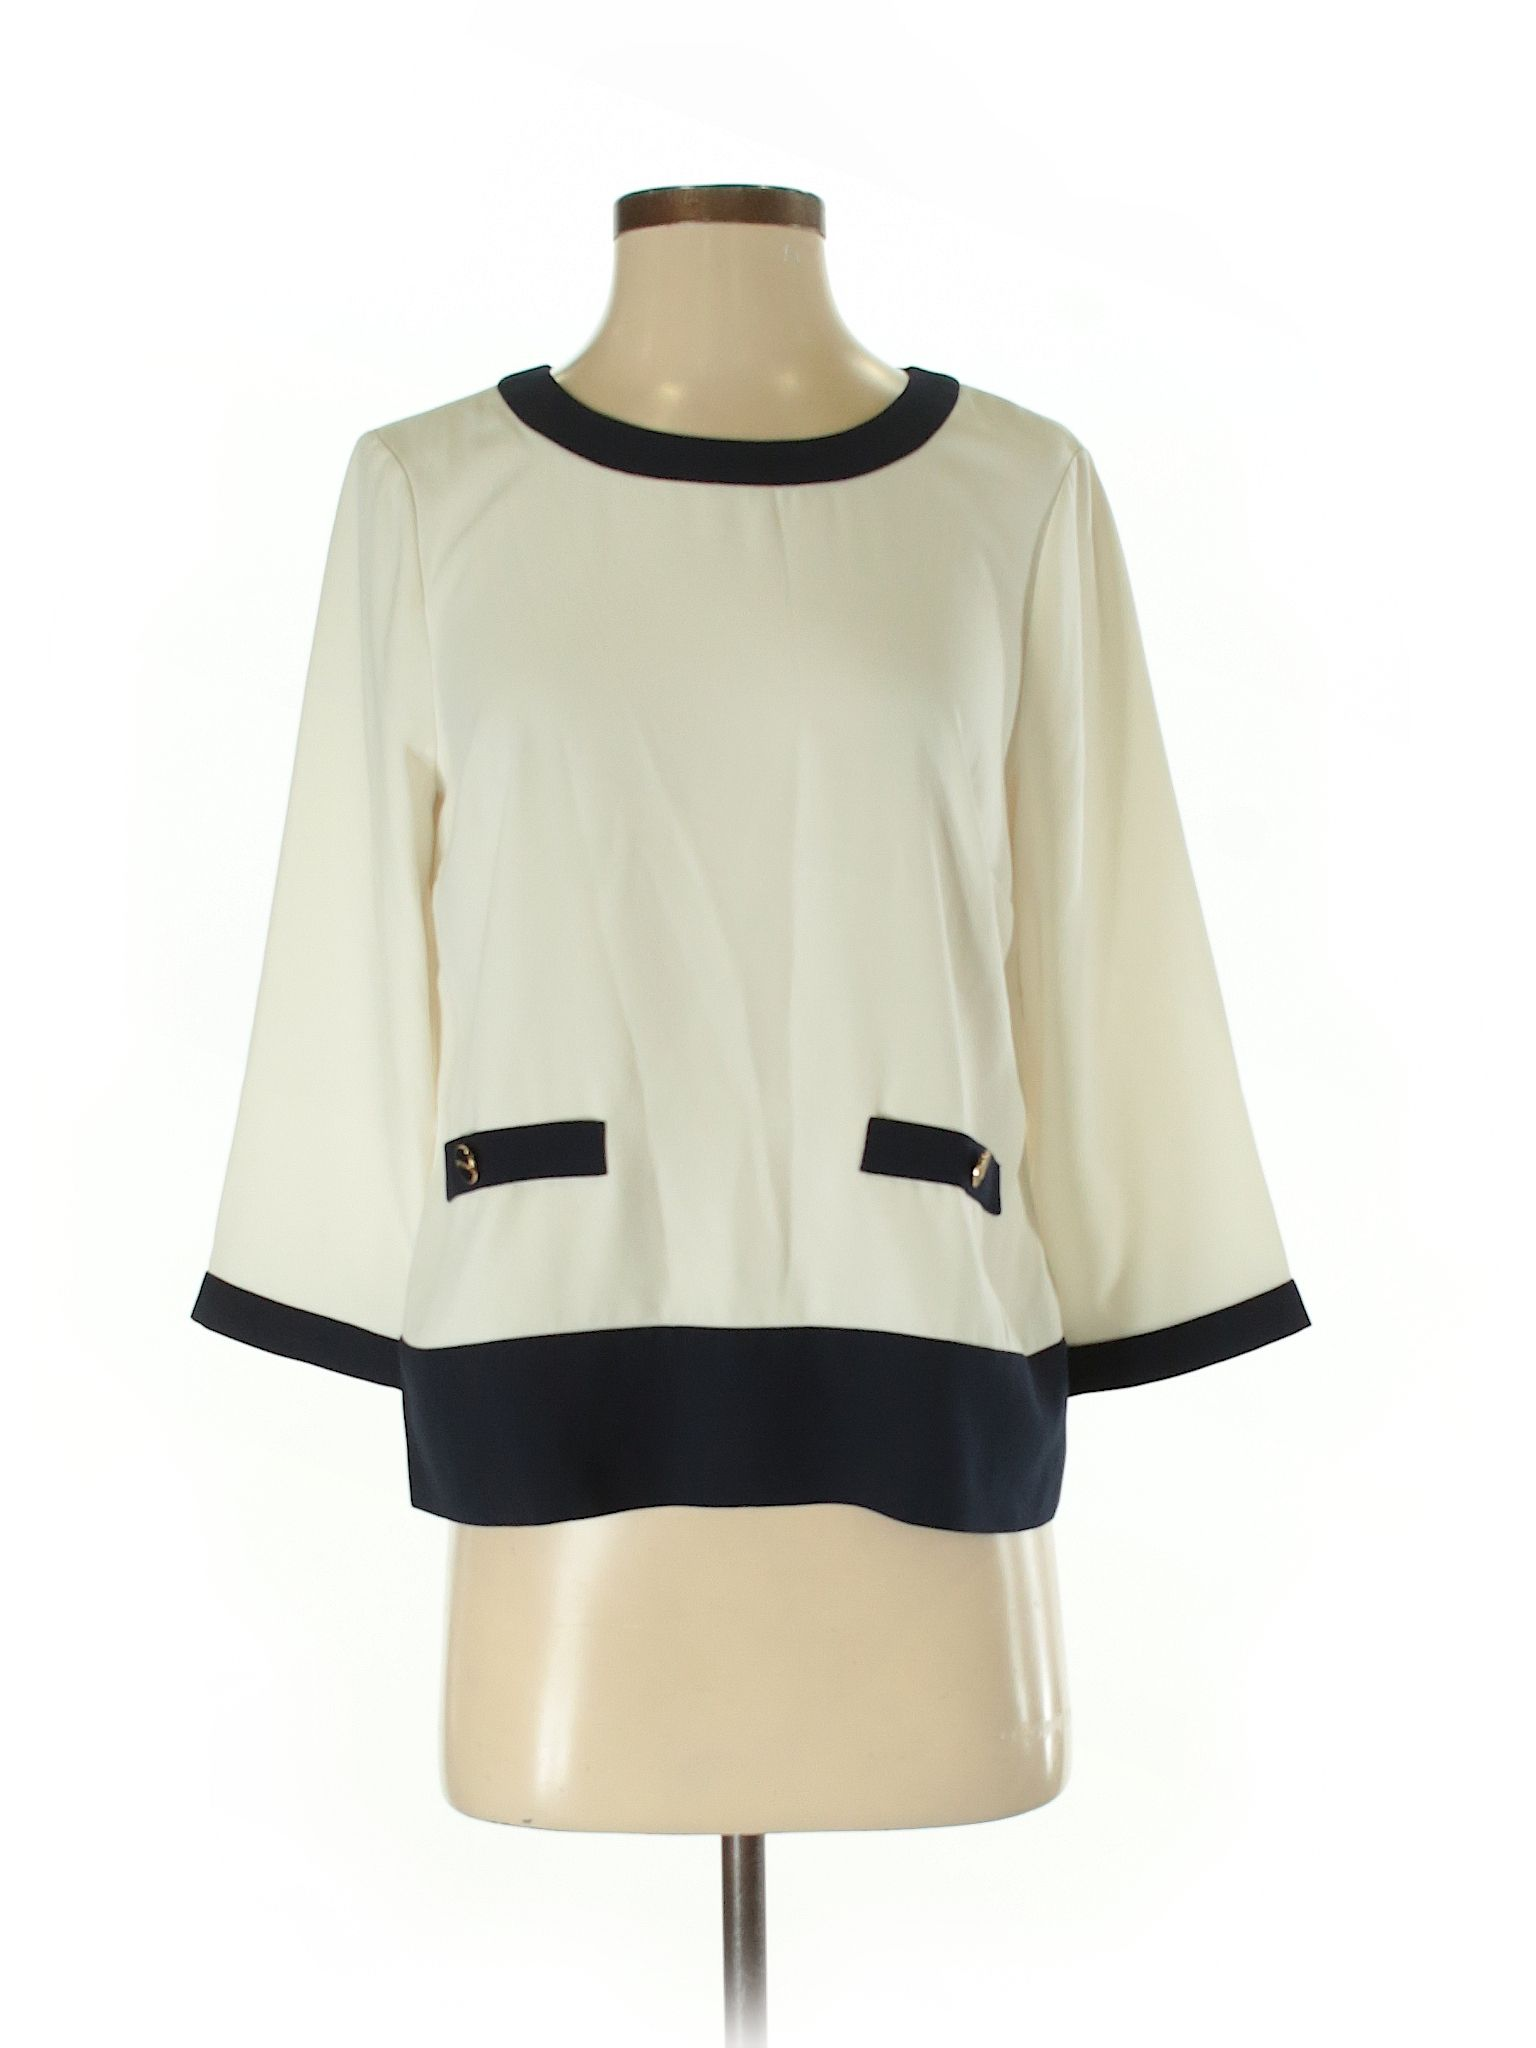 Talbots 34 Sleeve Blouse Size 000 Ivory Womens Tops